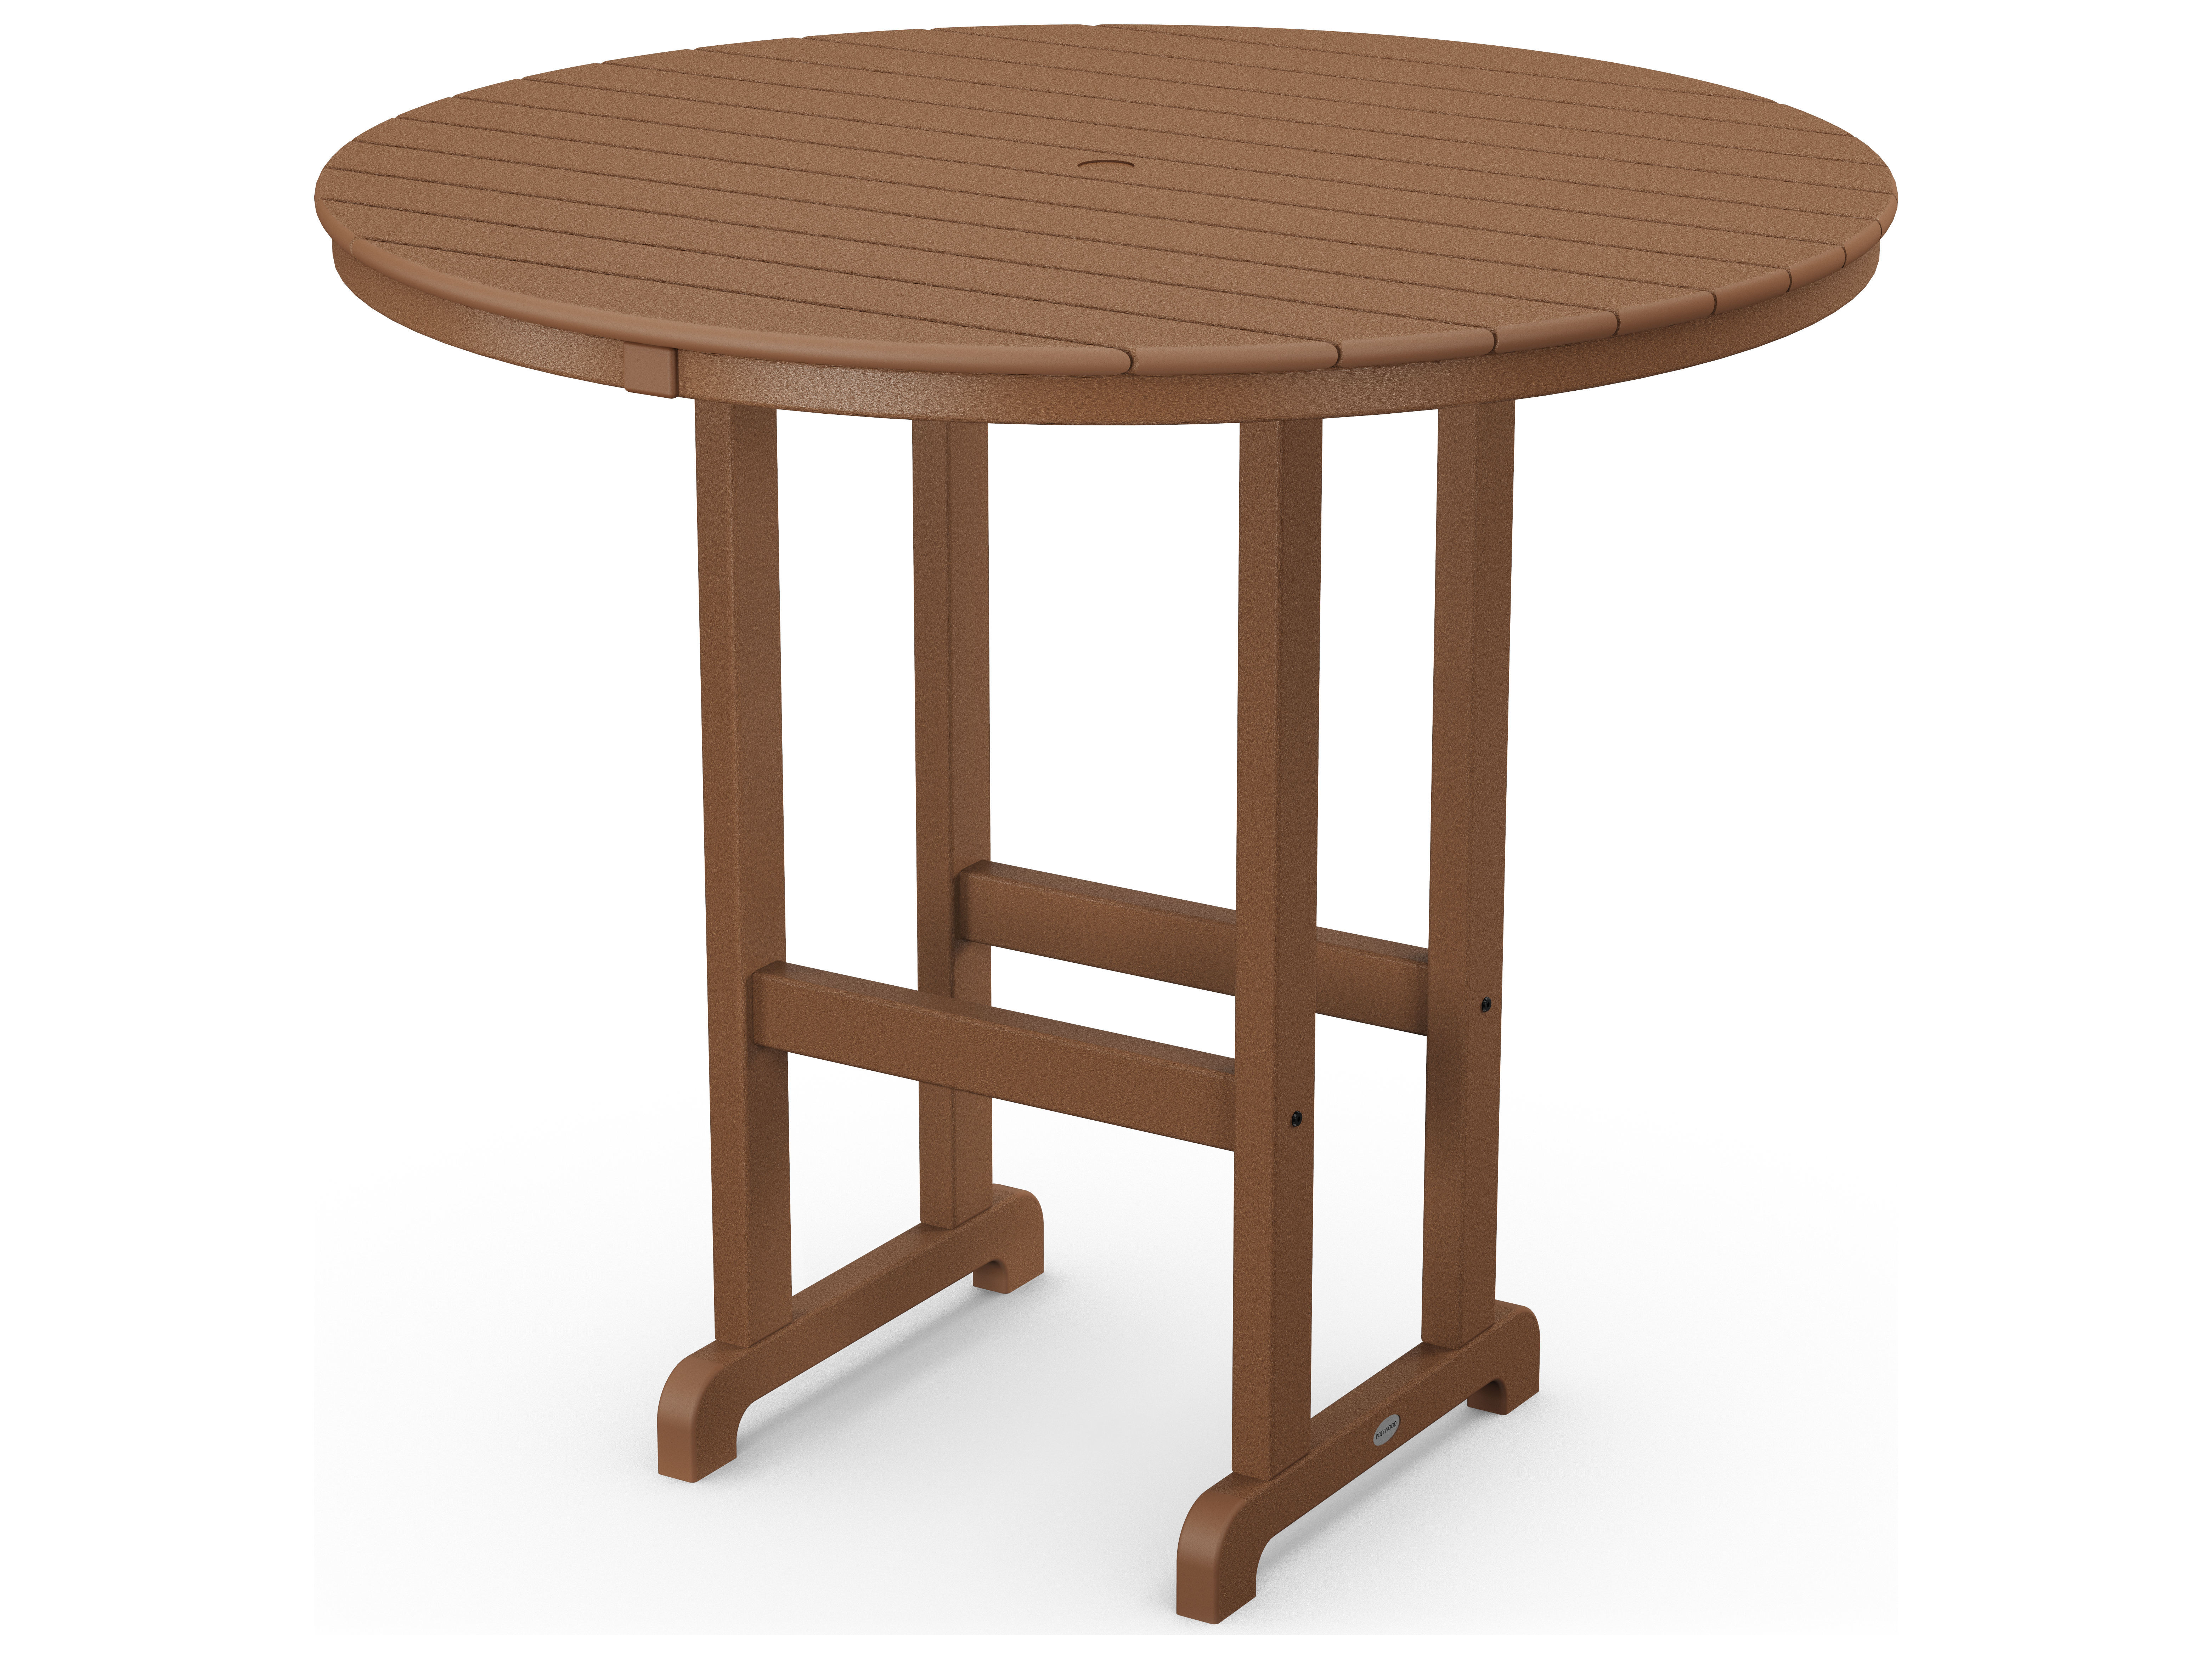 polywood traditional recycled plastic 48 round bar height table rbt248. Black Bedroom Furniture Sets. Home Design Ideas